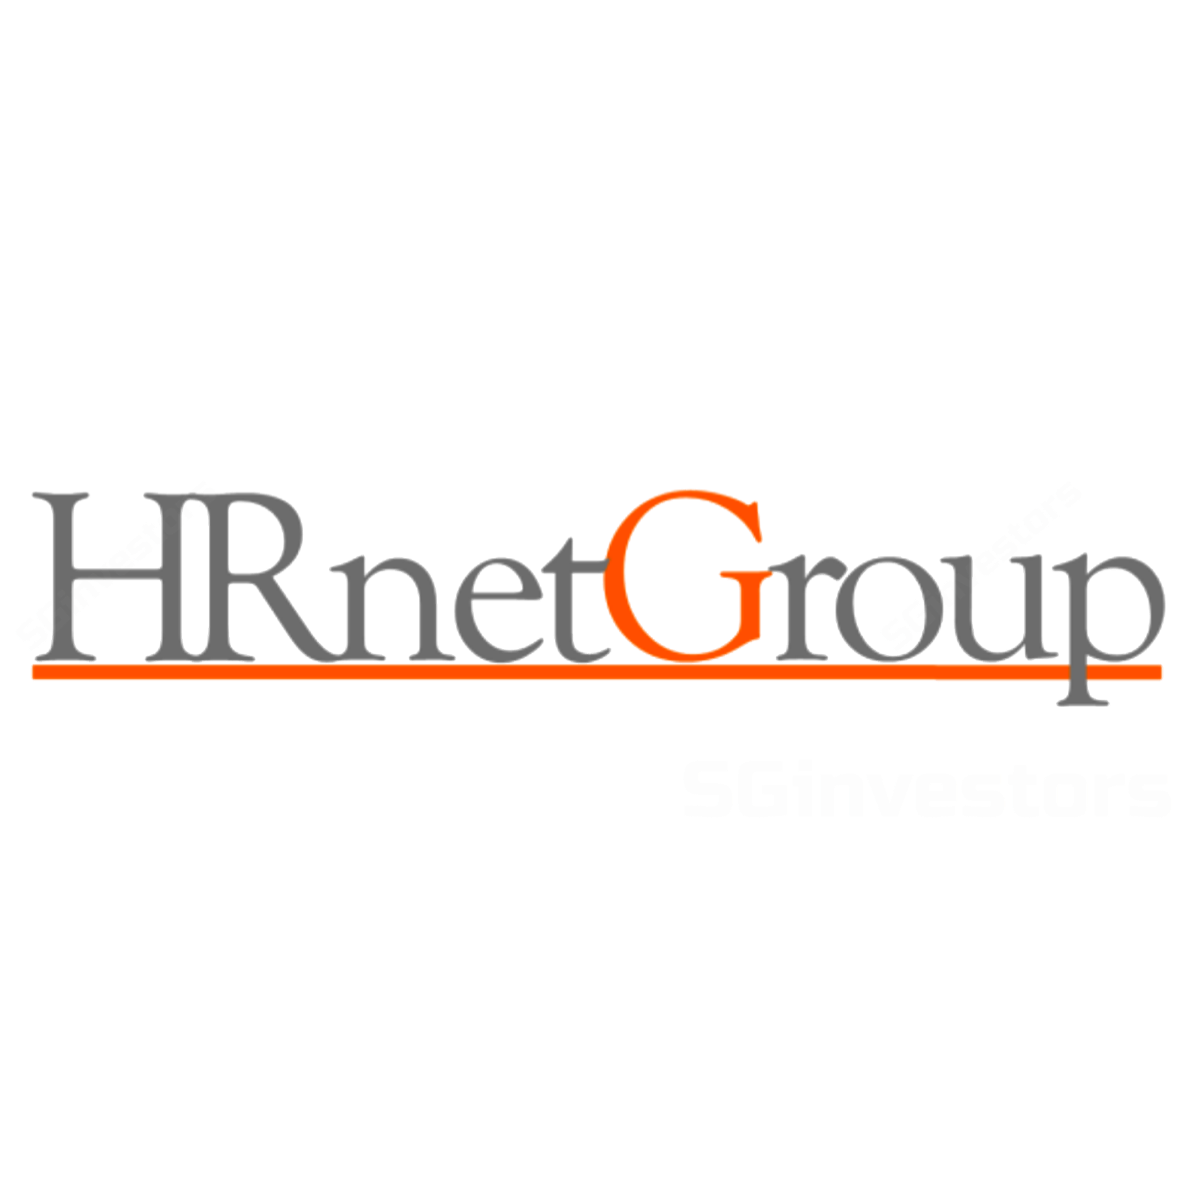 HRnetgroup - RHB Invest 2018-05-10: More Record Quarters To Follow